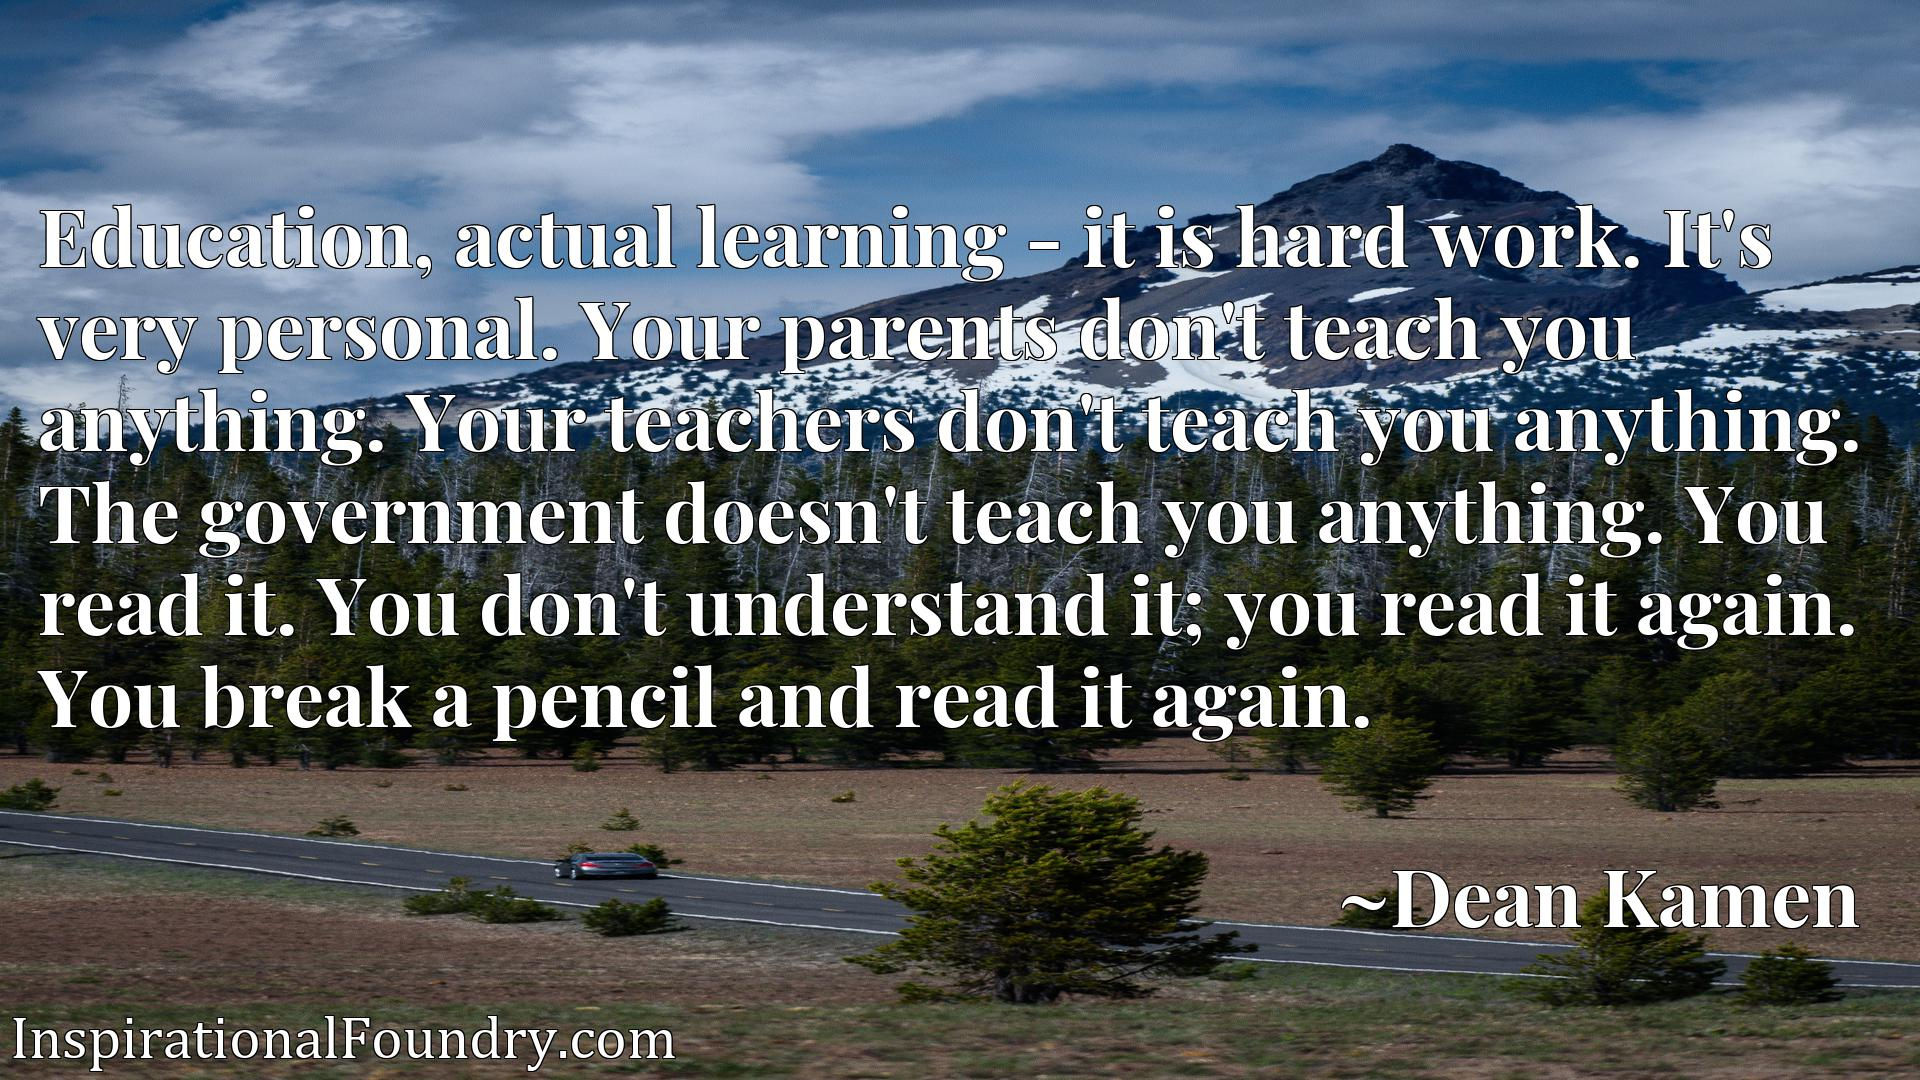 Education, actual learning - it is hard work. It's very personal. Your parents don't teach you anything. Your teachers don't teach you anything. The government doesn't teach you anything. You read it. You don't understand it; you read it again. You break a pencil and read it again.